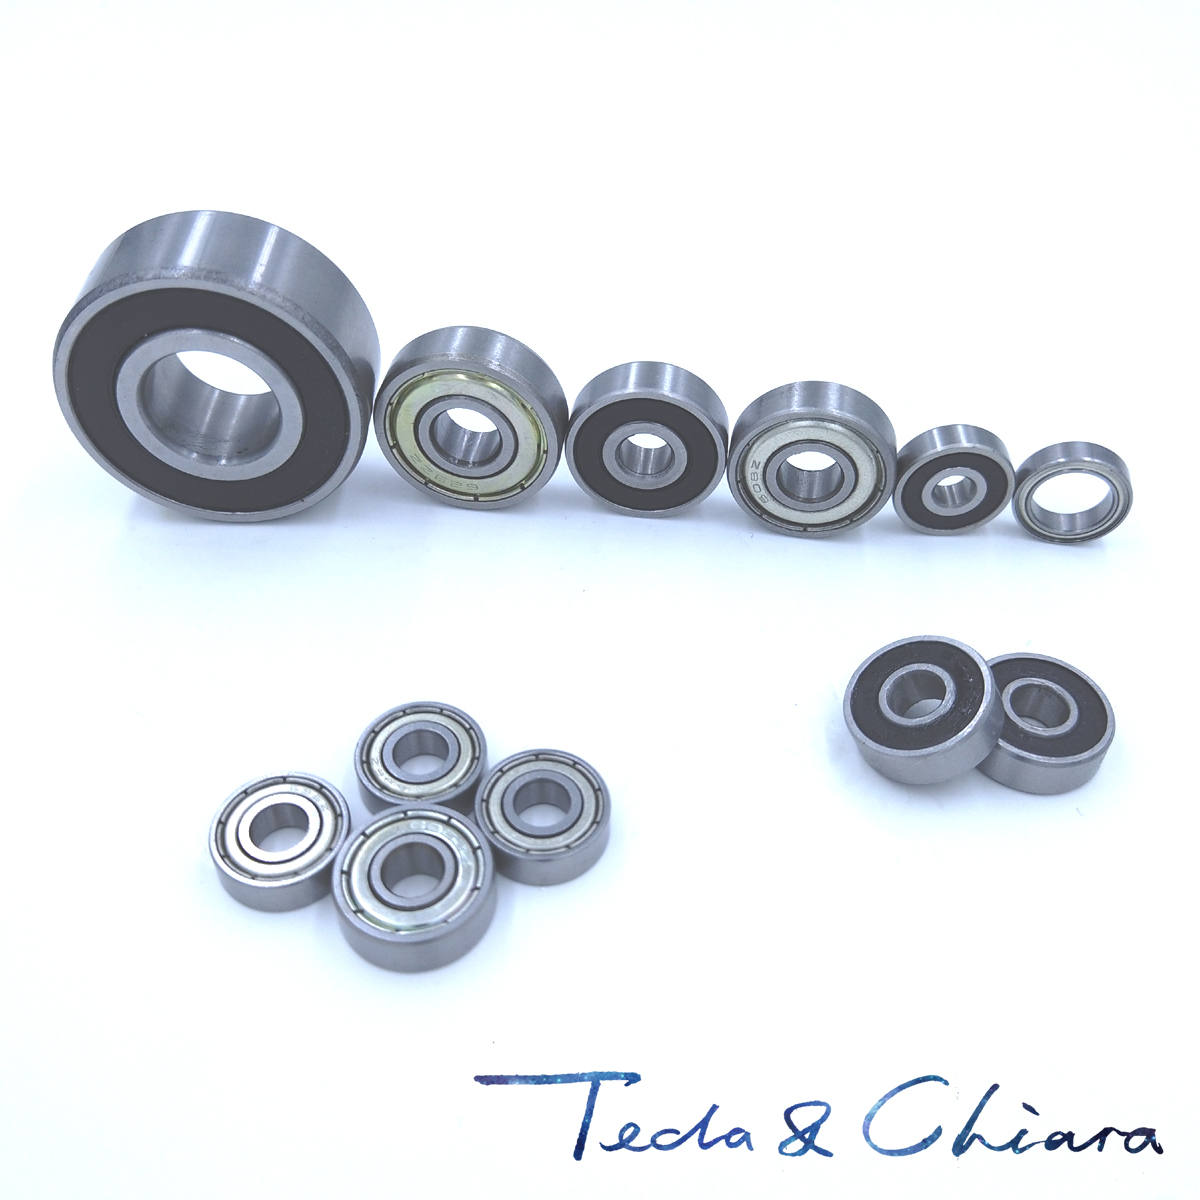 10Pcs 1Lot 678RS 678ZZ MR128 MR128ZZ MR128RS MR128-2Z MR128-2RS 678 ZZ RS RZ 2RZ Deep Groove Ball Bearings 8 X 12 X 3.5mm